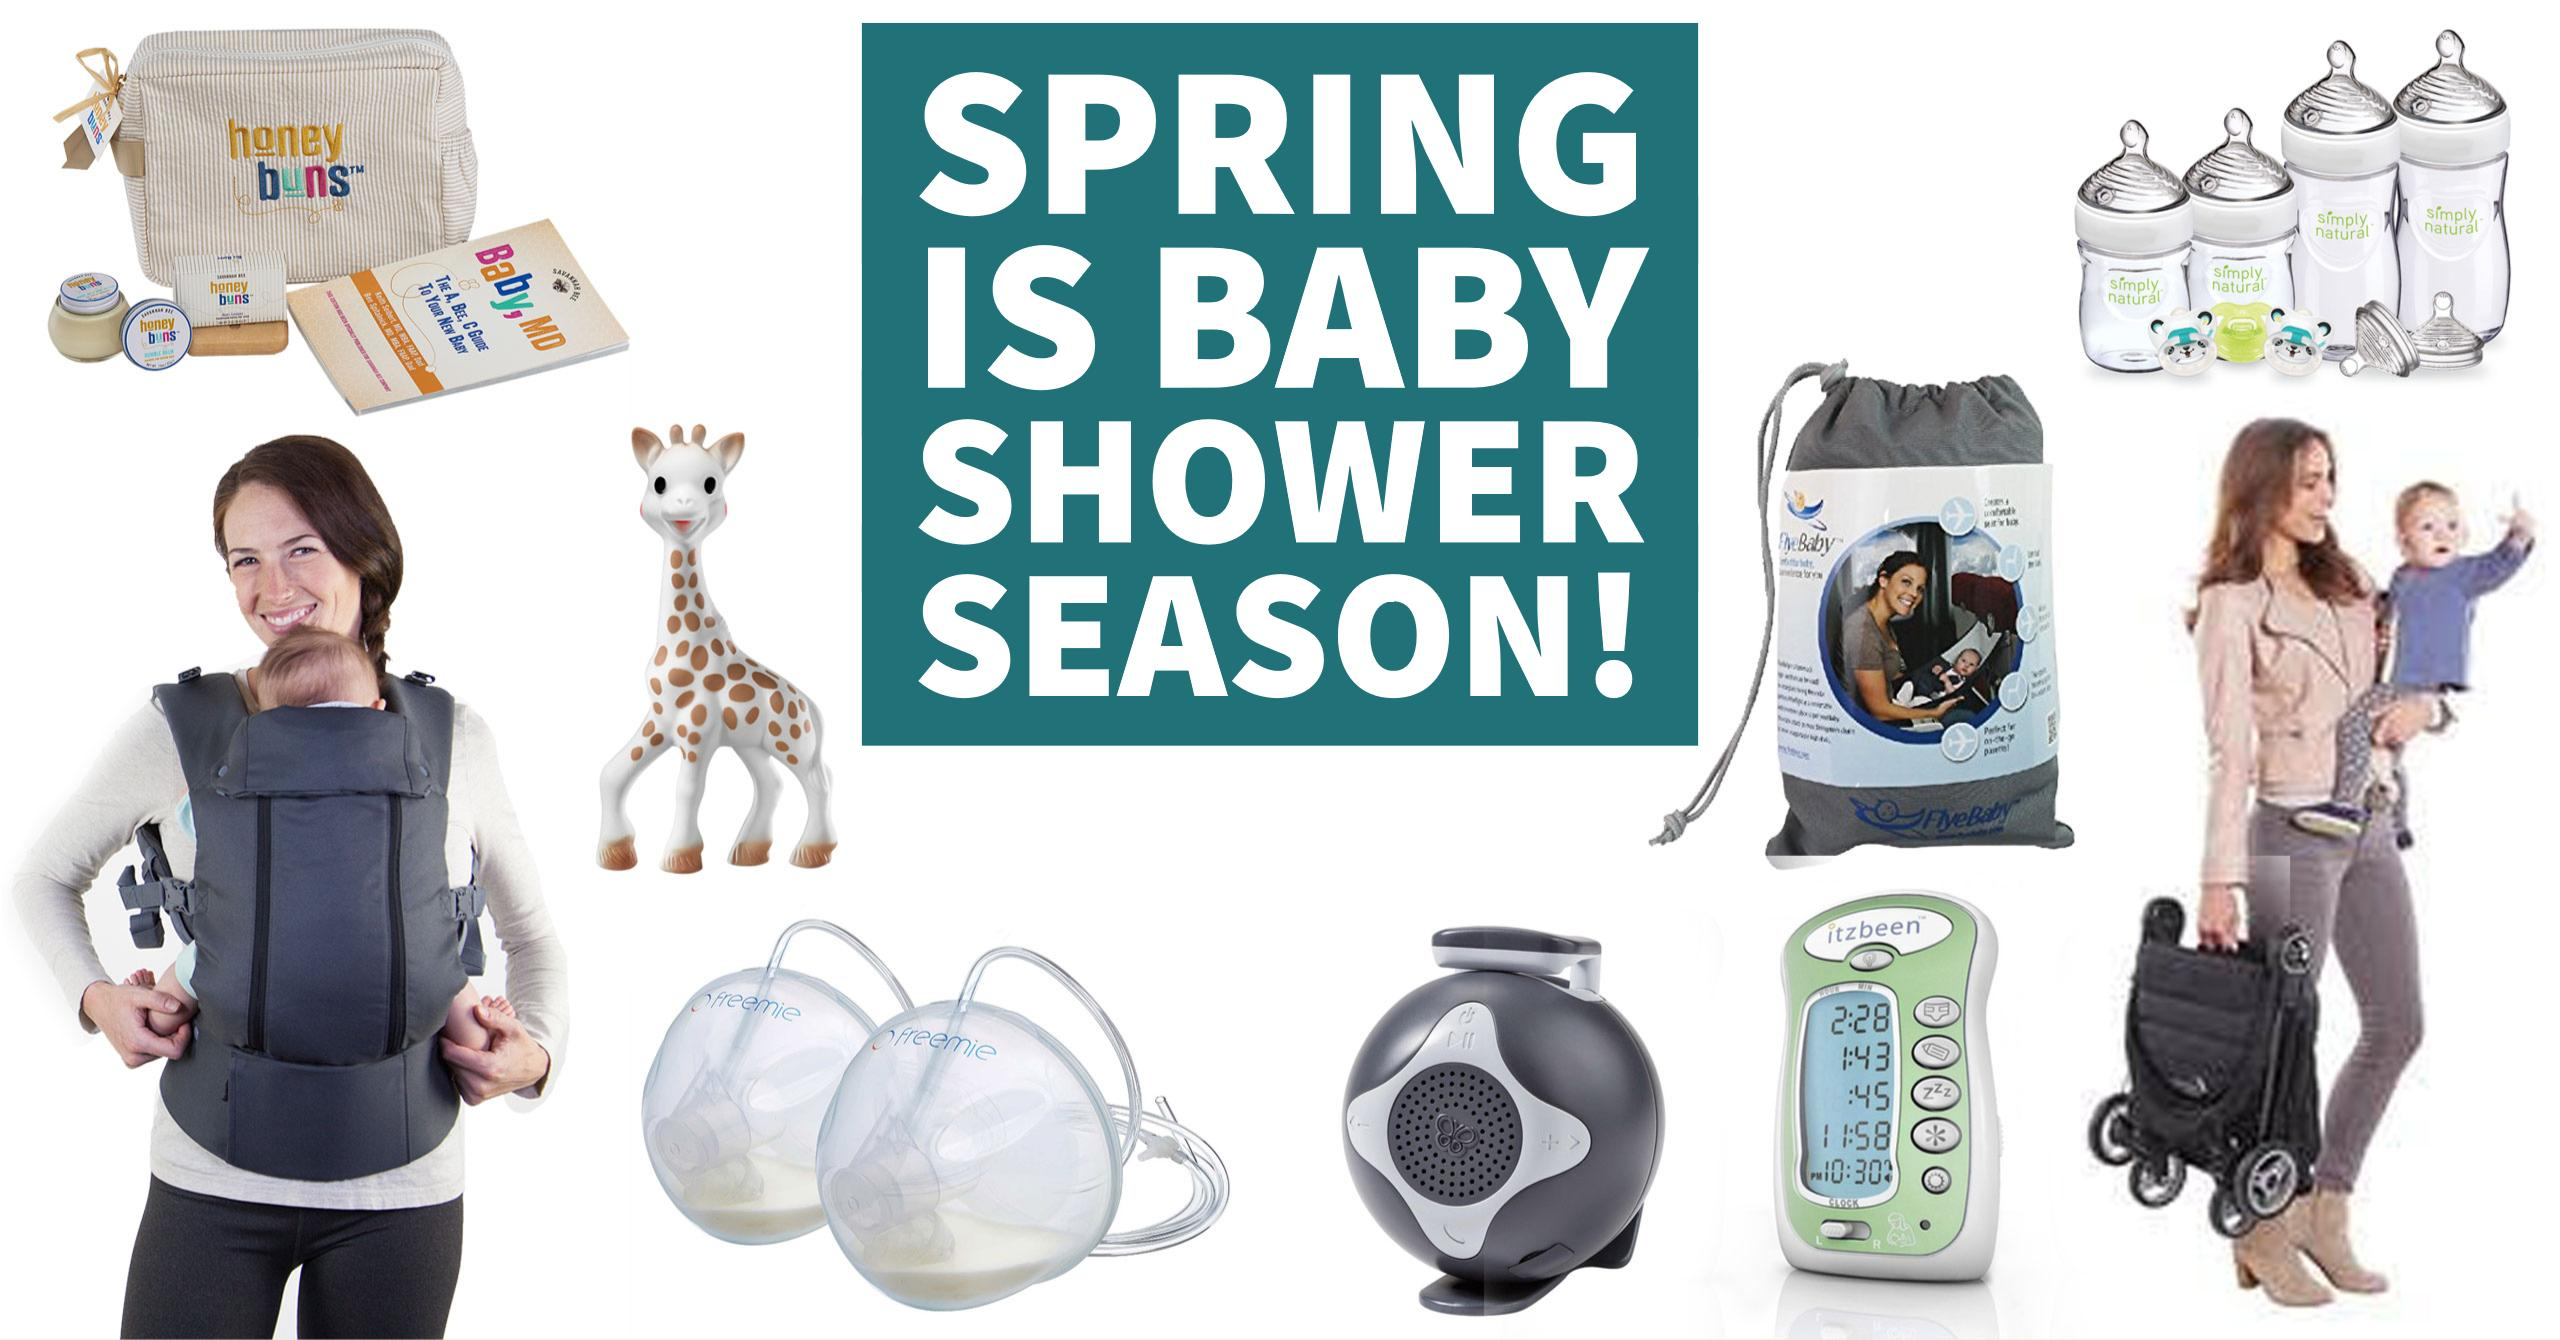 Spring is baby shower season